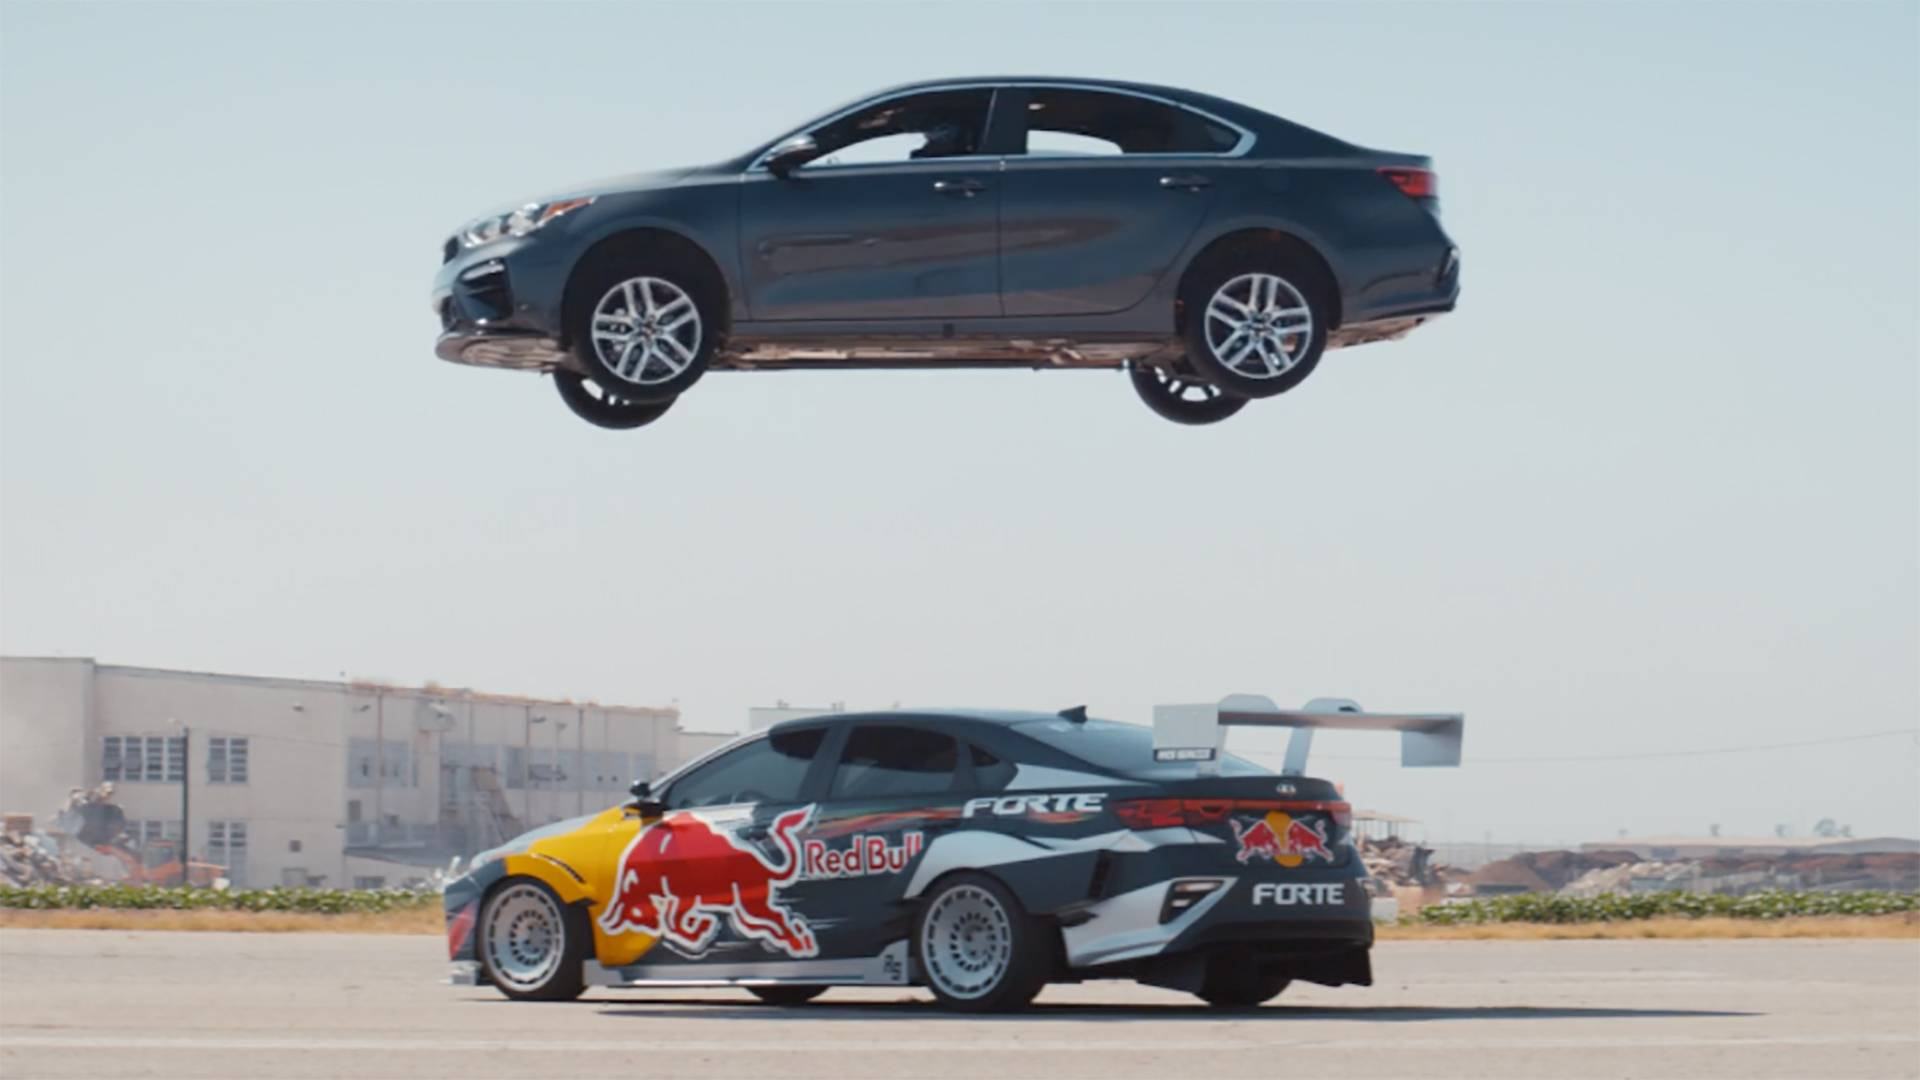 Watch A 2019 Kia Forte Jump Over A Forte Race Car In New Ad